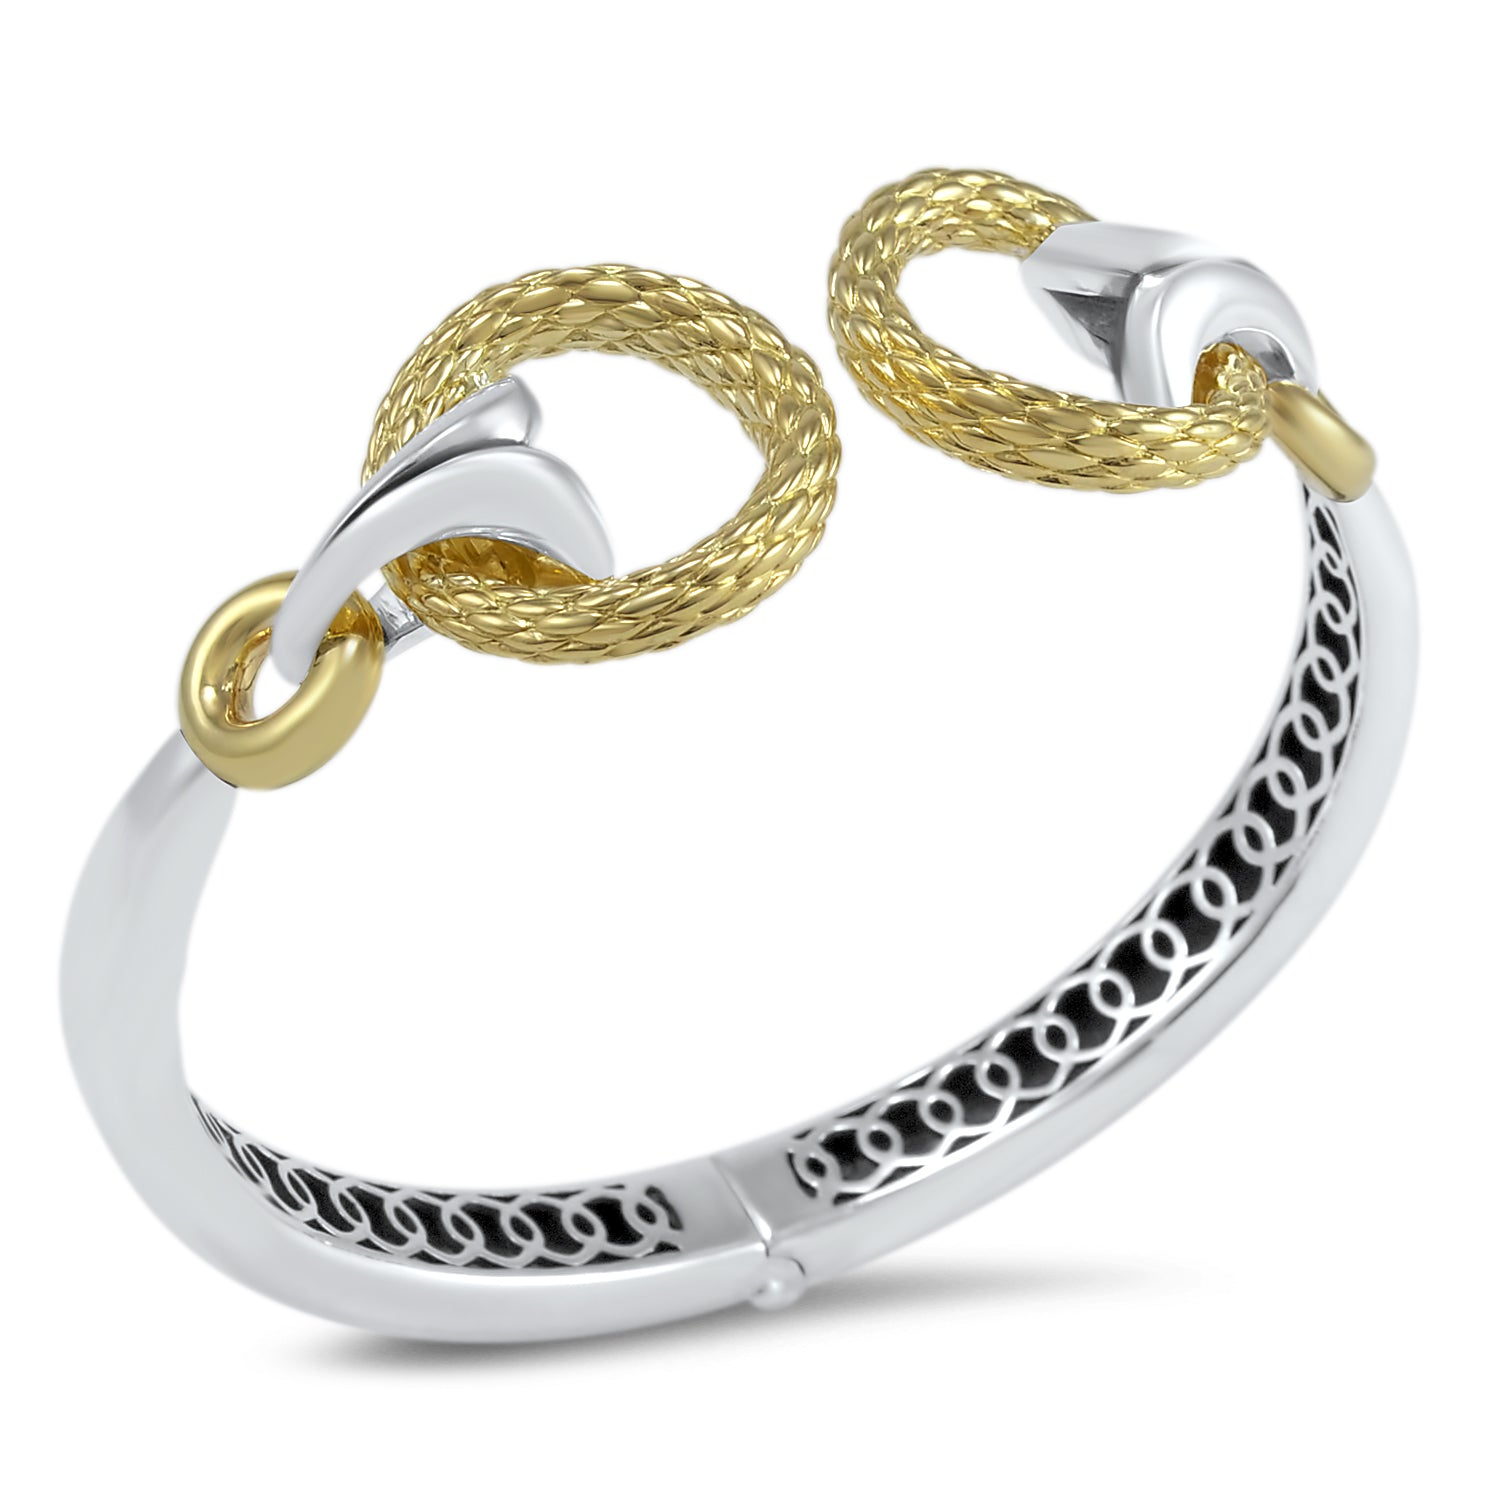 b8de3191a Tryst Rendezvous Torque Cuff Bracelet - REALM FINE + FASHION JEWELRY™